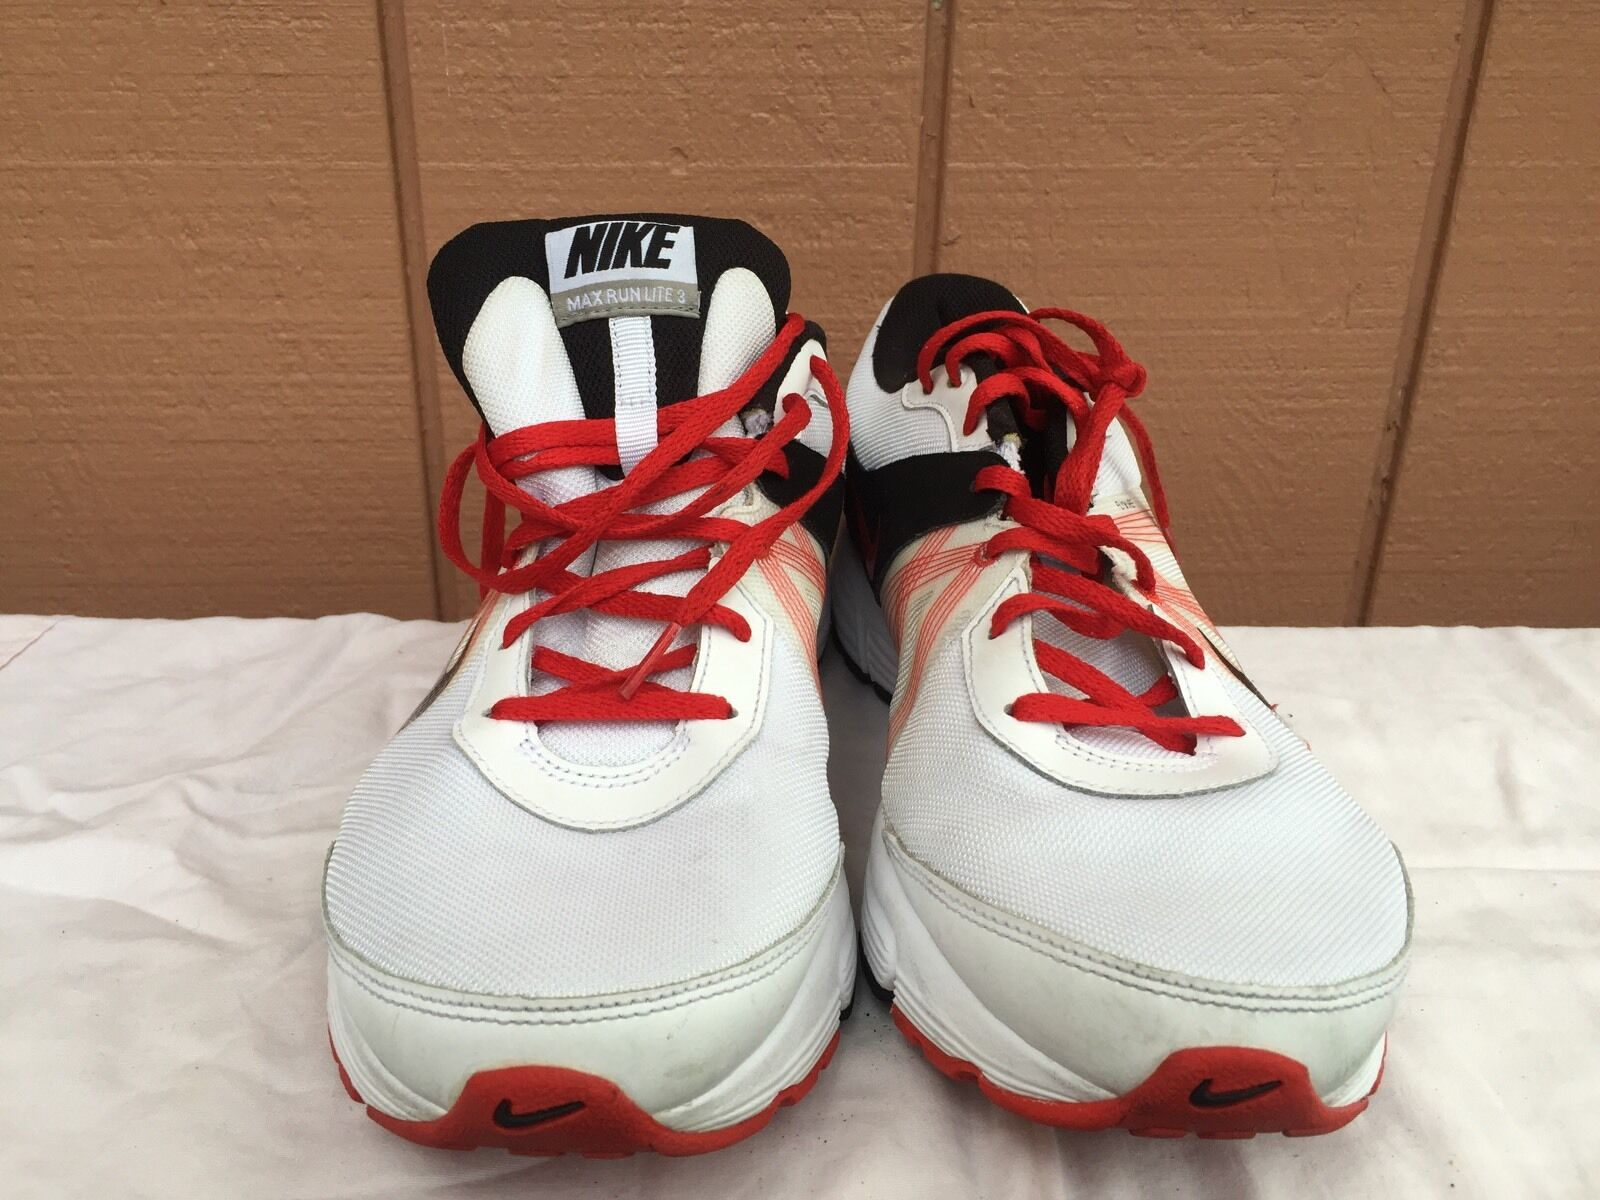 NIKE MAX RUN LITE 3 MENS RUNNING SHOES WHITE/RED/BLK SIZE 12.5 Cheap and beautiful fashion